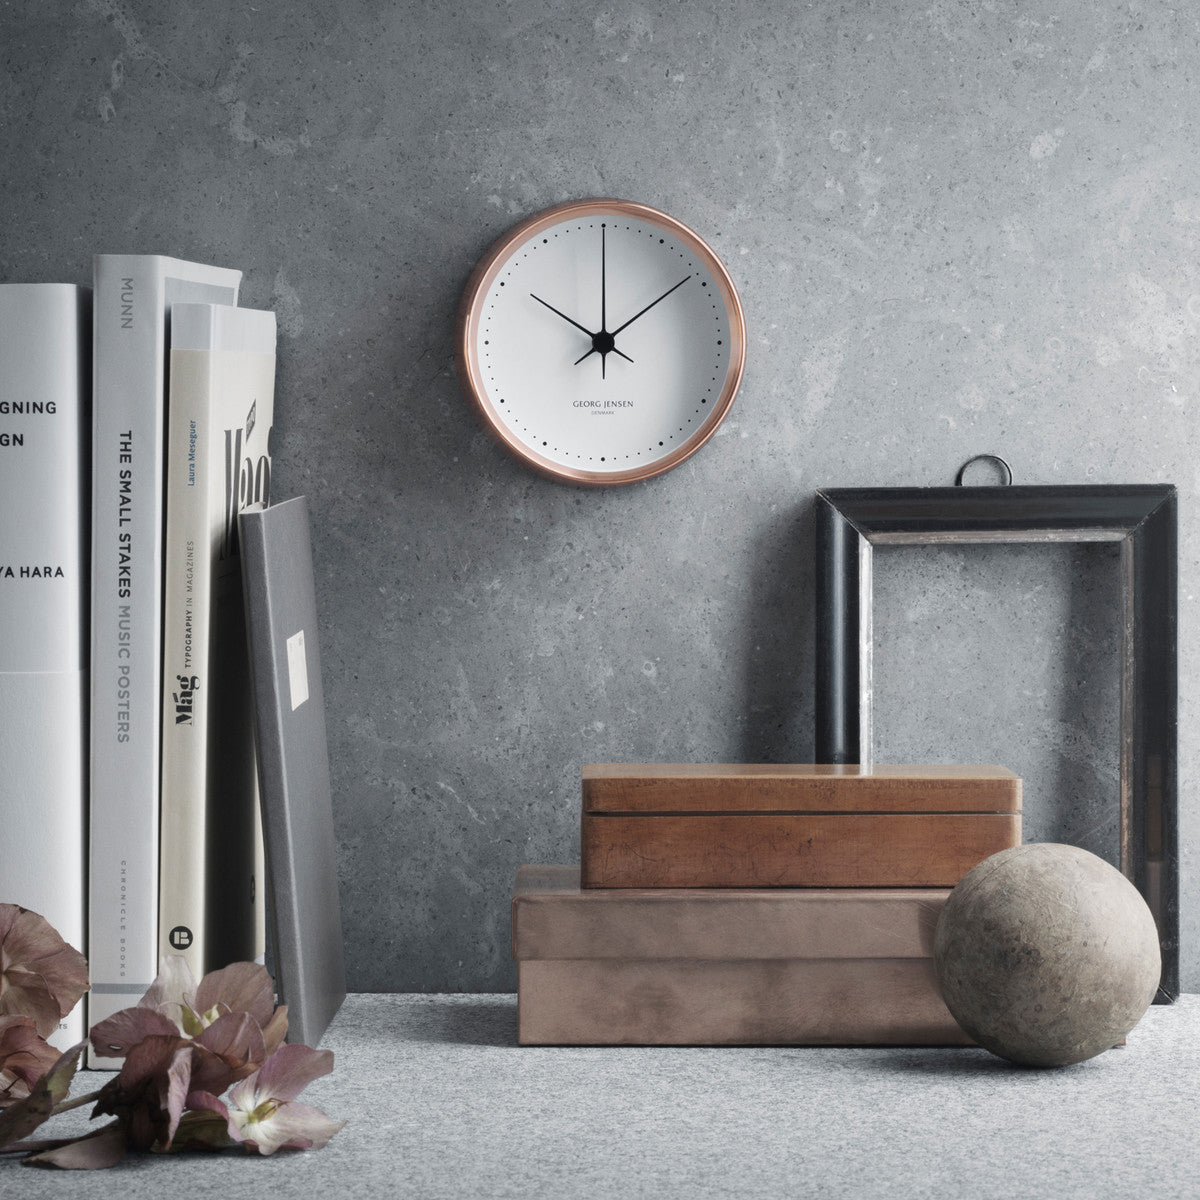 collections/Copper-Clock-weiss-Ambiente.jpg